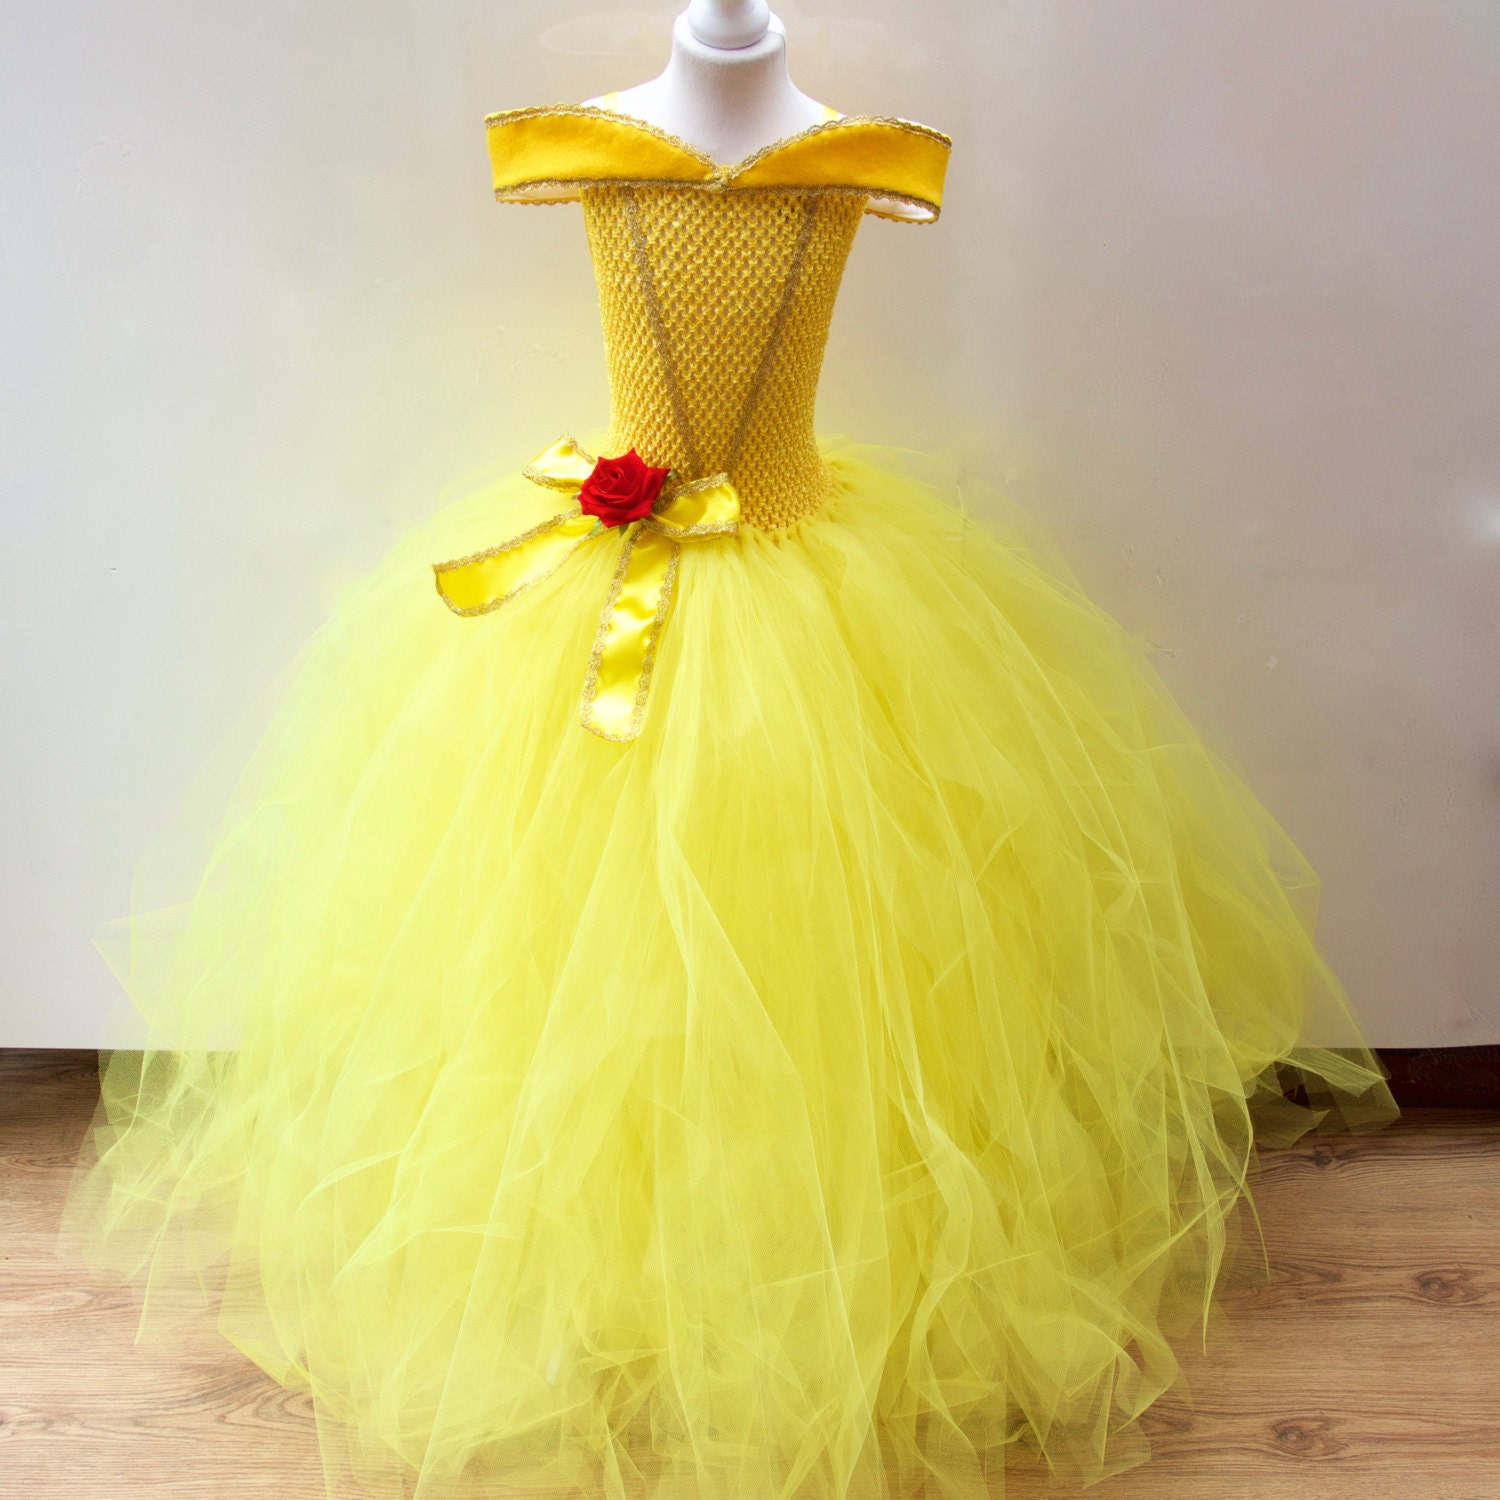 Top Disney Belle Beauty & the Beast inspired Gown Prom Belle UQ34